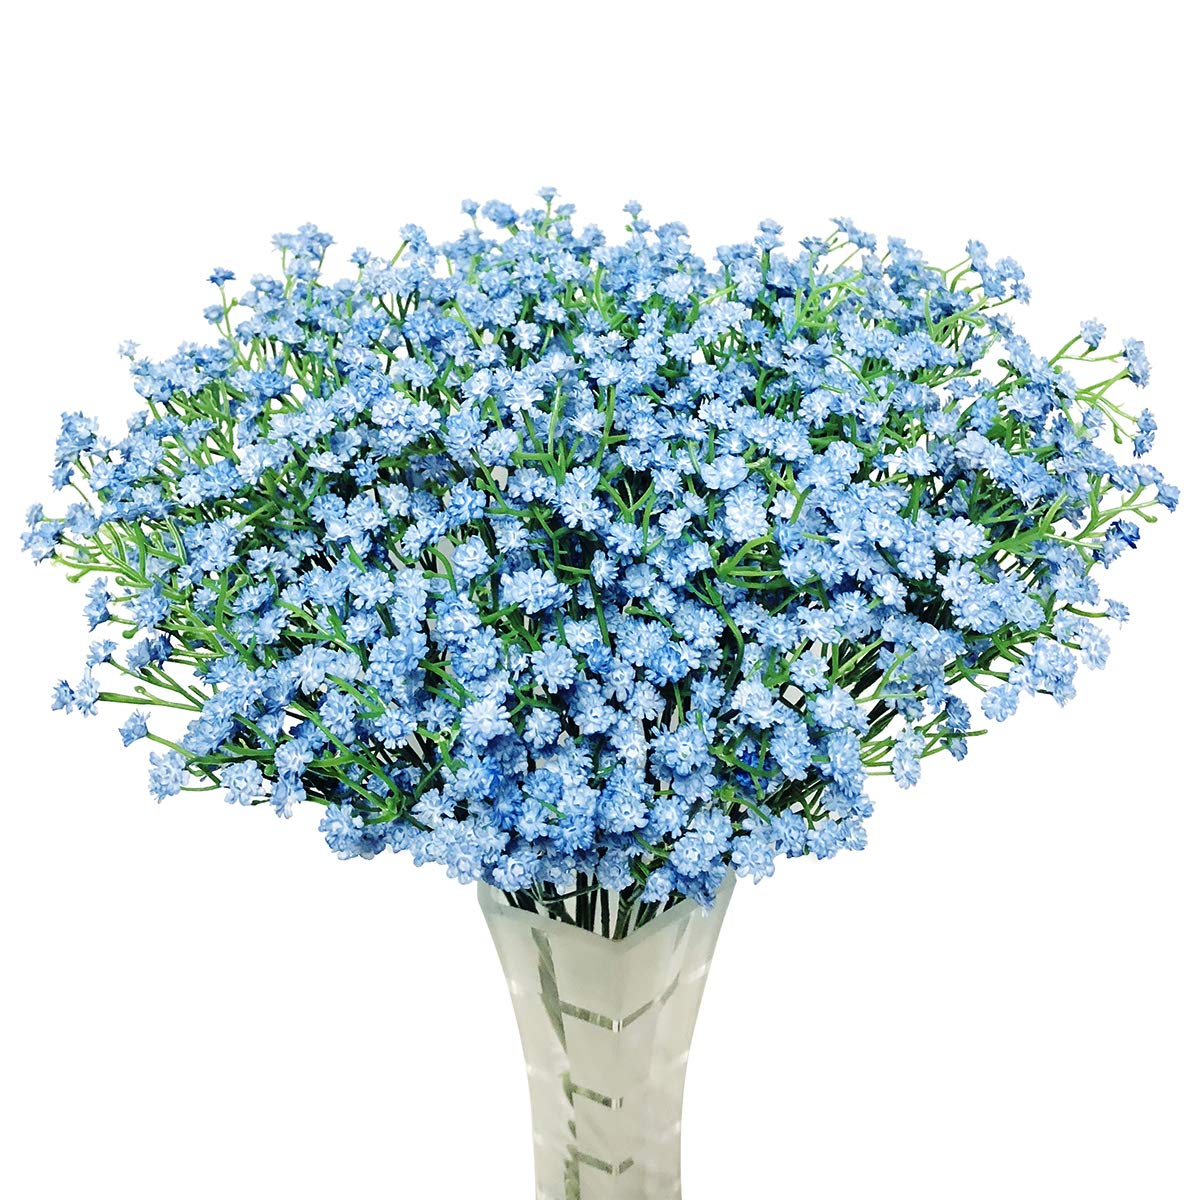 "HANTAJANSS 12 pcs Baby Breath Gypsophila Artificial Flowers Bouquets Fake Real Touch Flowers for Wedding Party Decoration DIY Home Decor 21"" Blue"